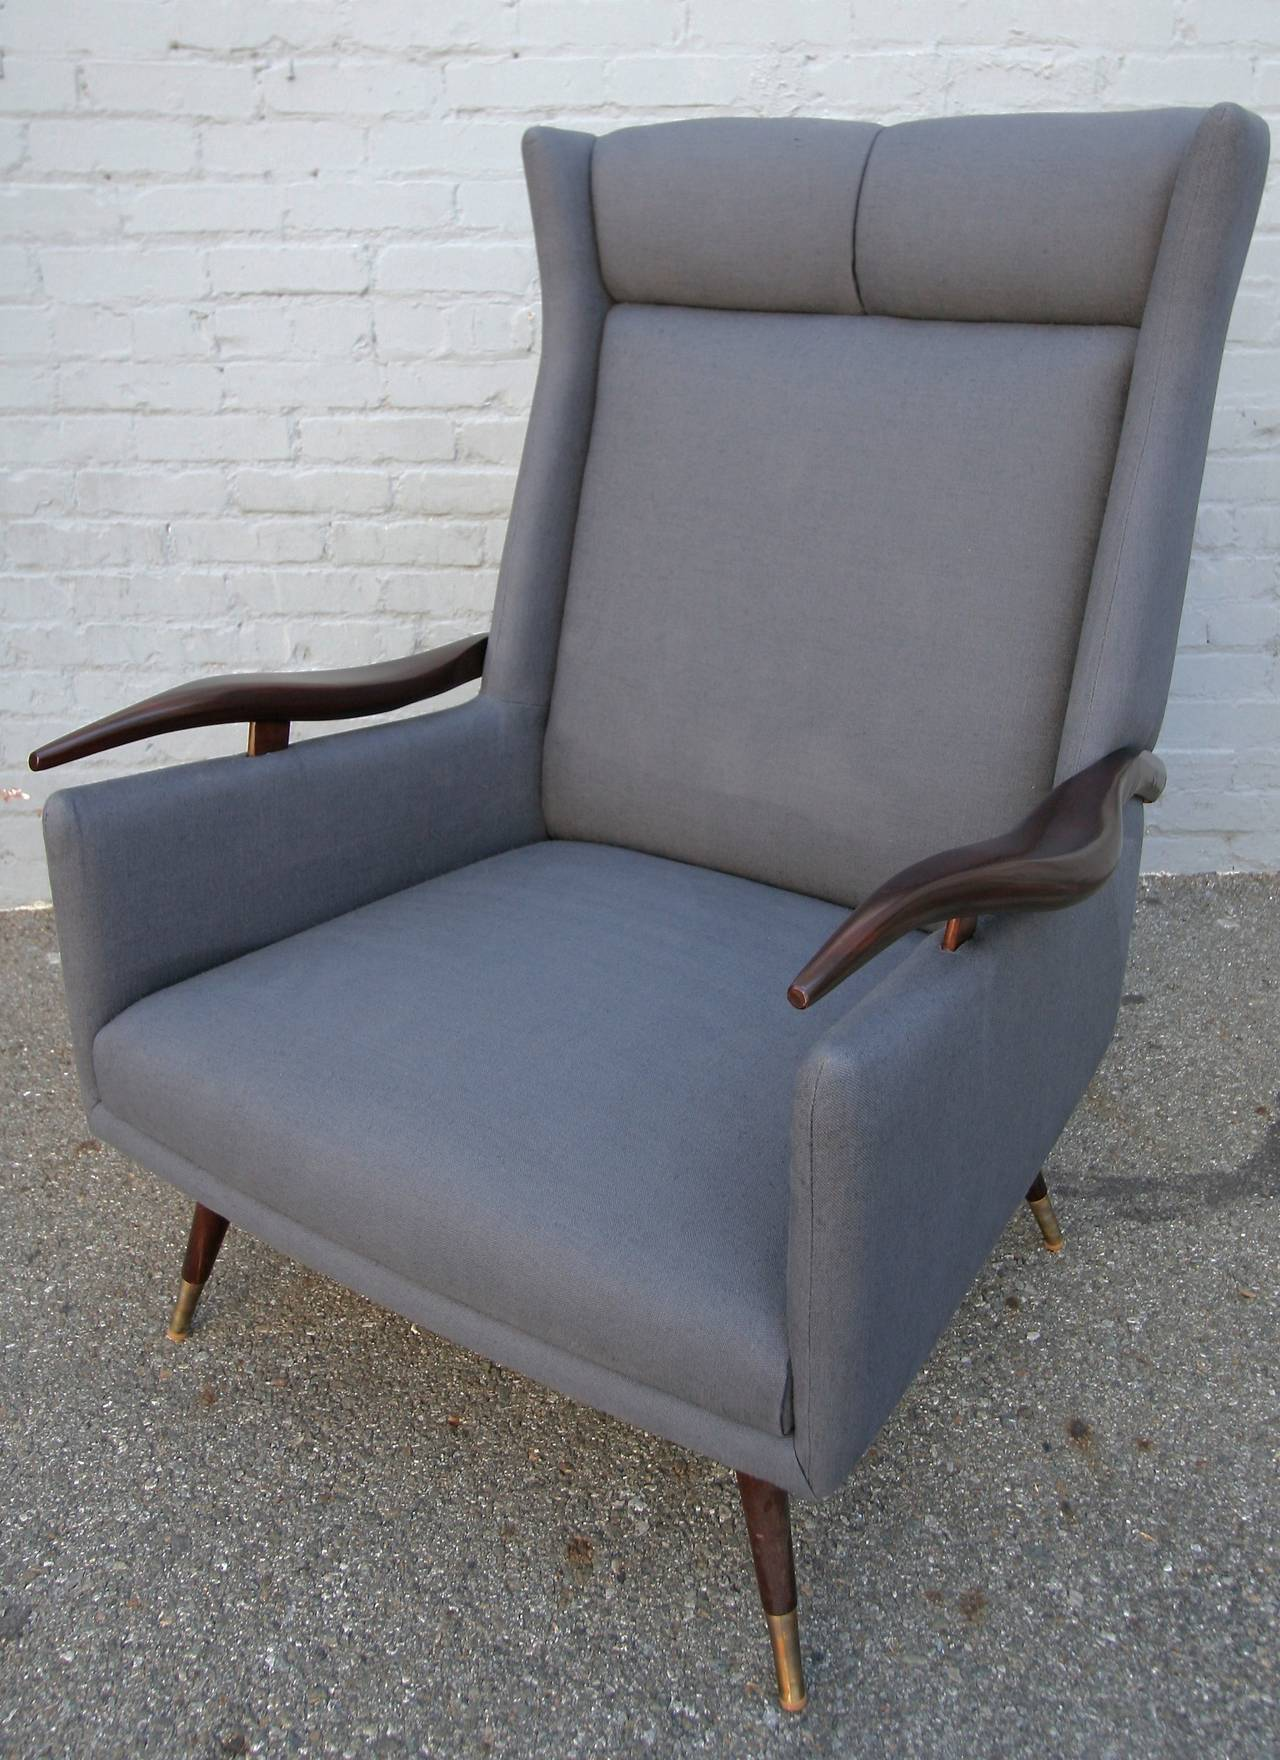 Pair of very comfortable 1950s Brazilian lounge / armchairs chairs with wooden arms and brass feet.